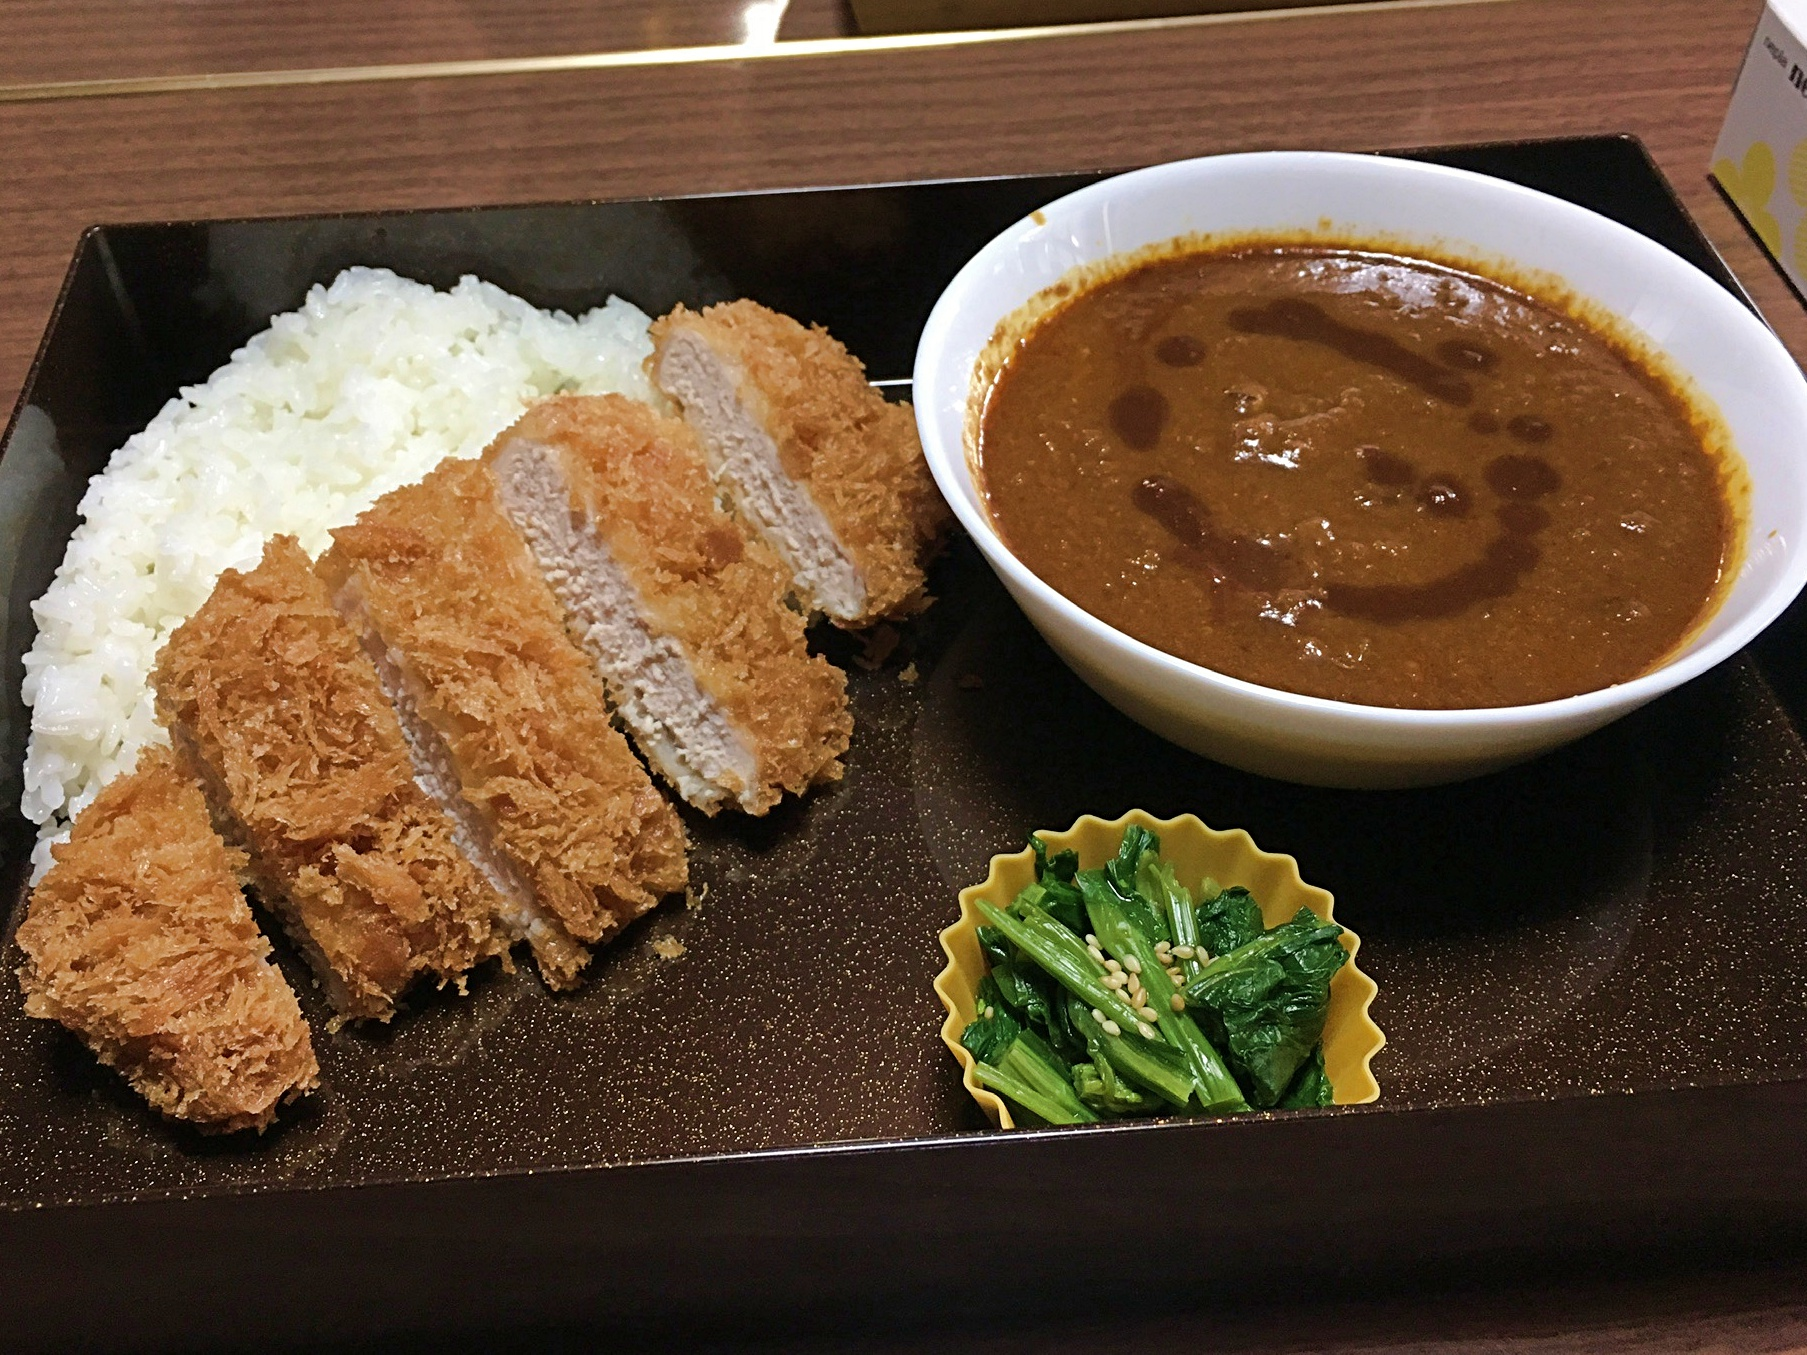 Bento style lunch with steamed white rice, crispy pork tonkatsu cutlet sliced and served with homemade curry sauce with hot chili oil garnish and a small side of blanched chopped spinach.